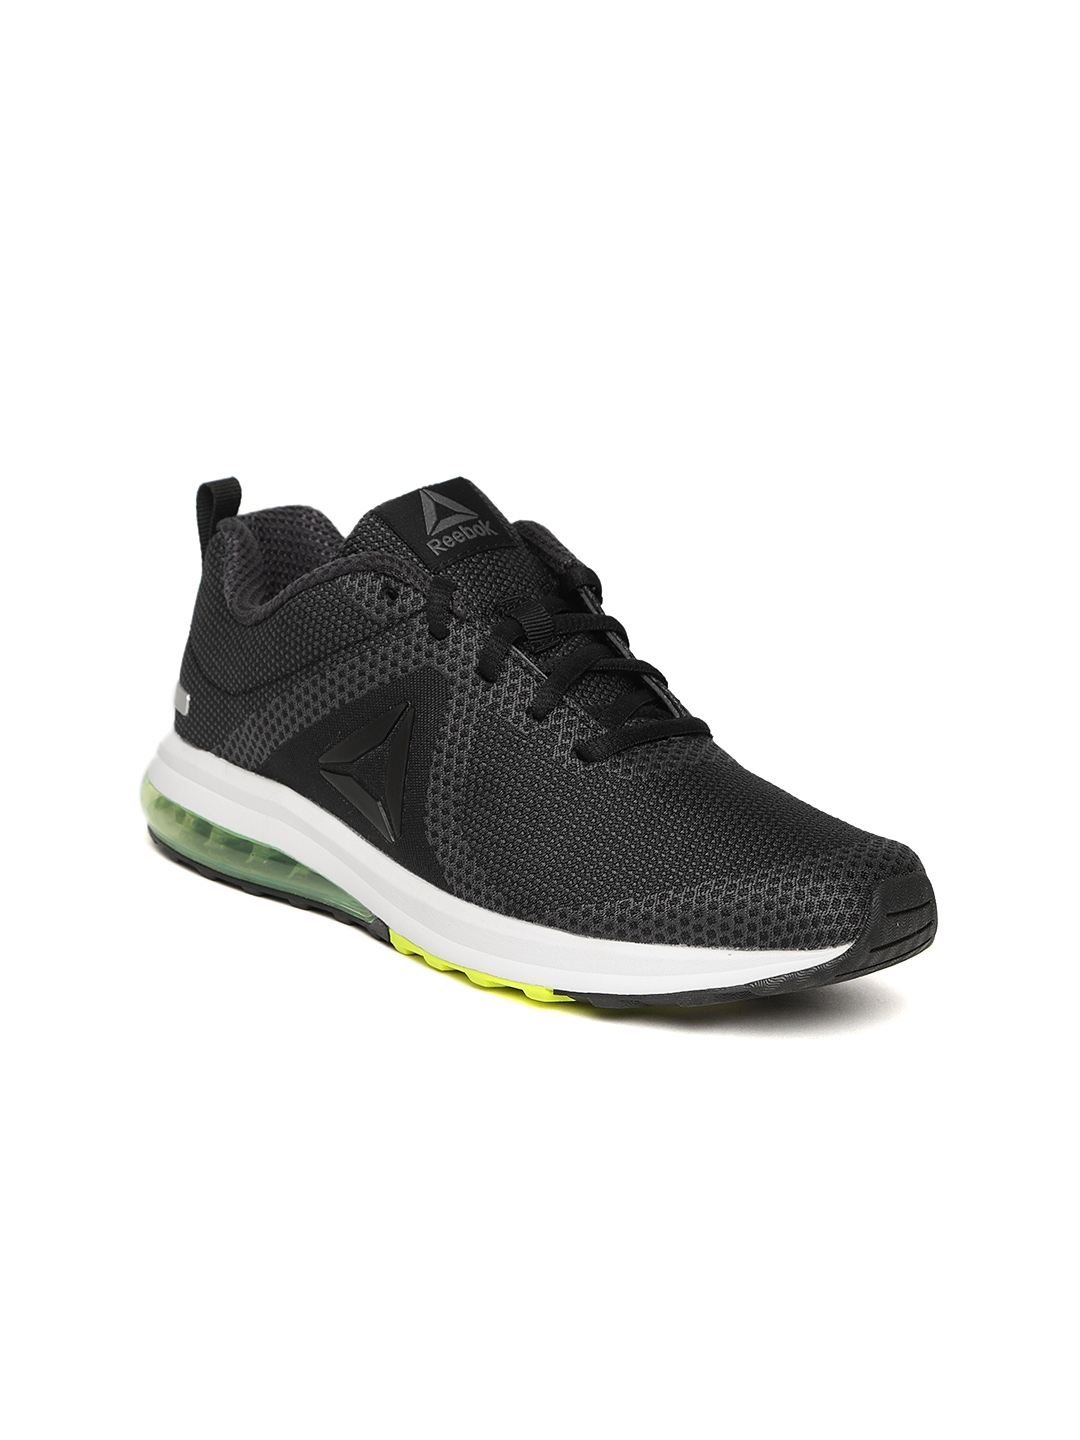 ace5cadaf Buy Reebok Women Black Jet Dashride 6.0 Running Shoes - Sports Shoes ...